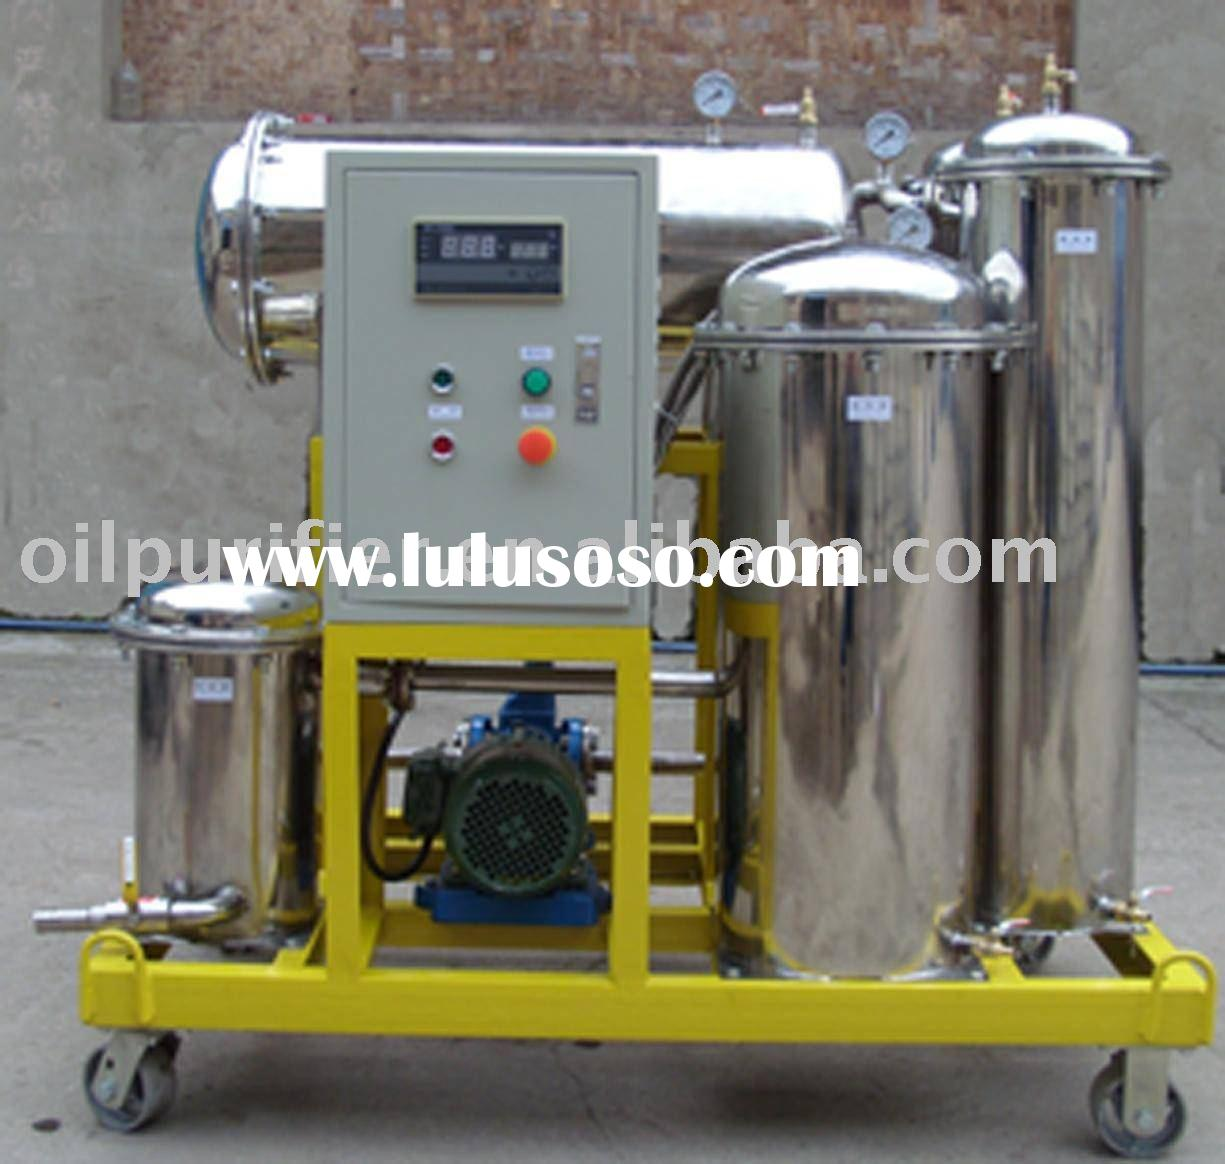 Vegetable Oil Filtration Machine/ Cooking Oil Purifier/recycling